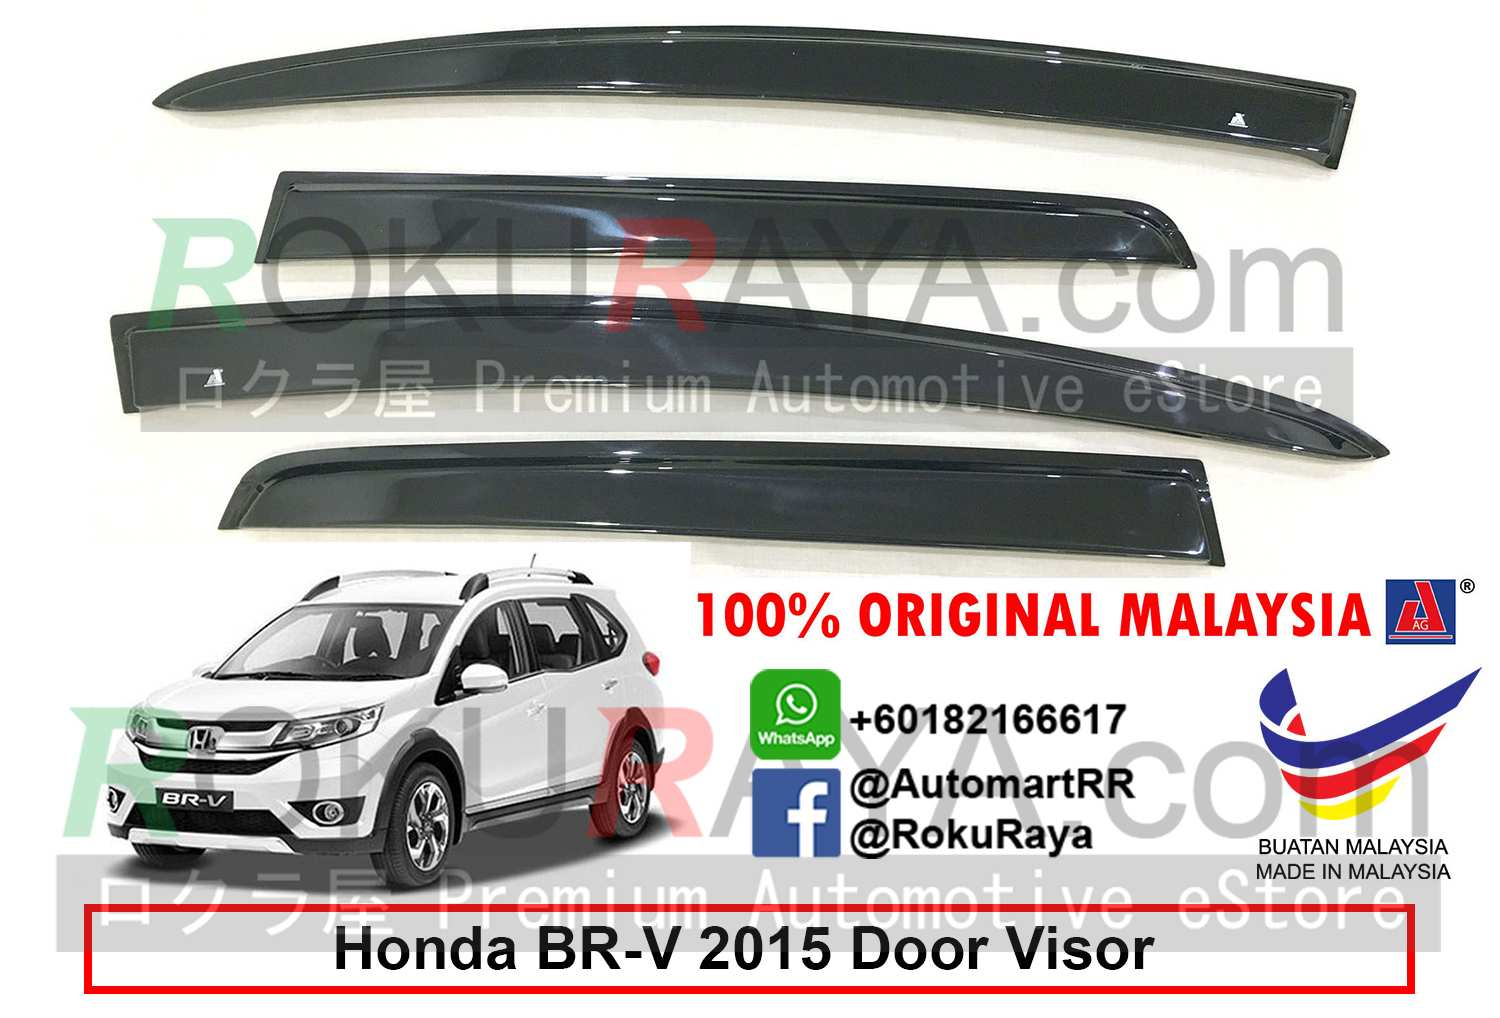 47 New Honda Brv 2020 Malaysia Price and Review with Honda Brv 2020 Malaysia